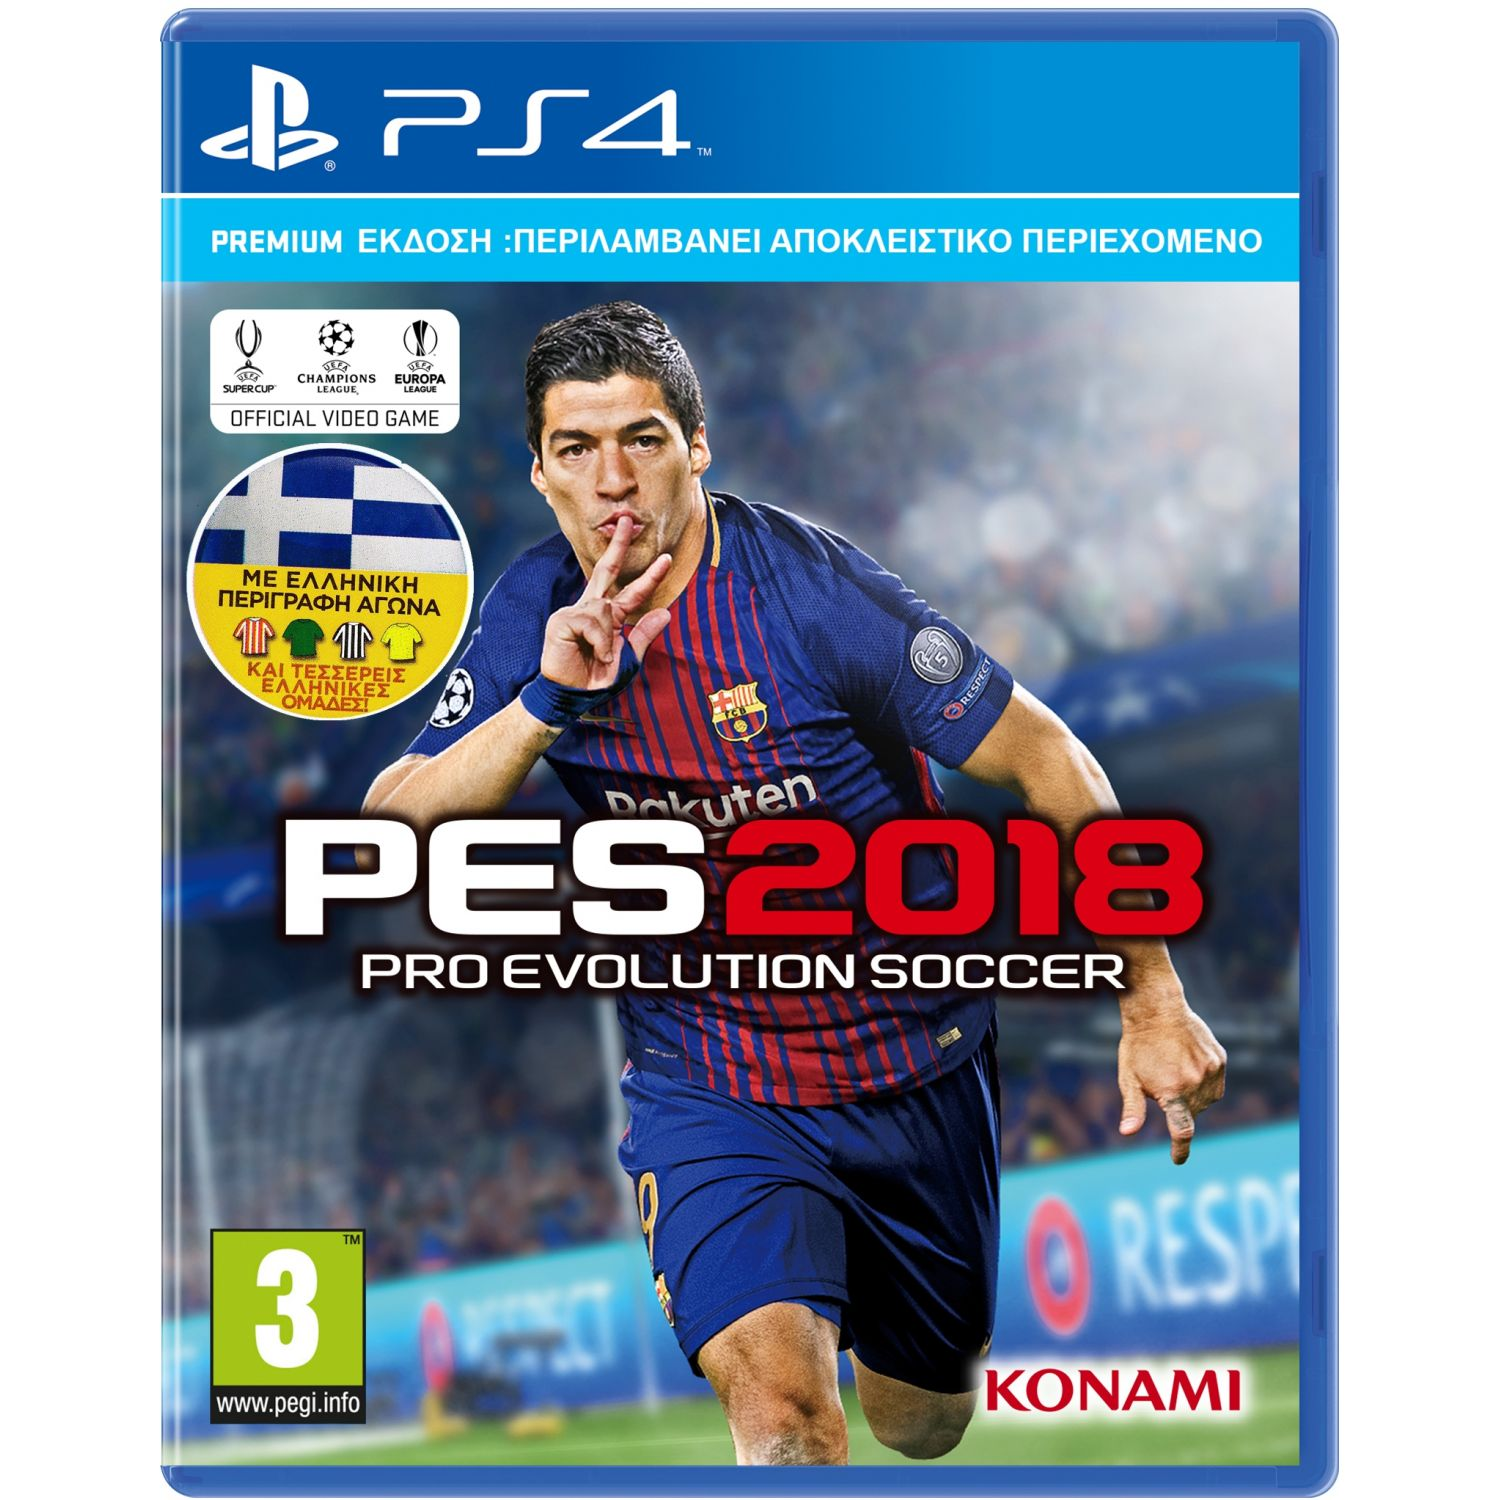 PRO EVOLUTION SOCCER 2018 [ΕΛΛΗΝΙΚΟ] - DAY 1 PREMIUM EDITION (PS4)